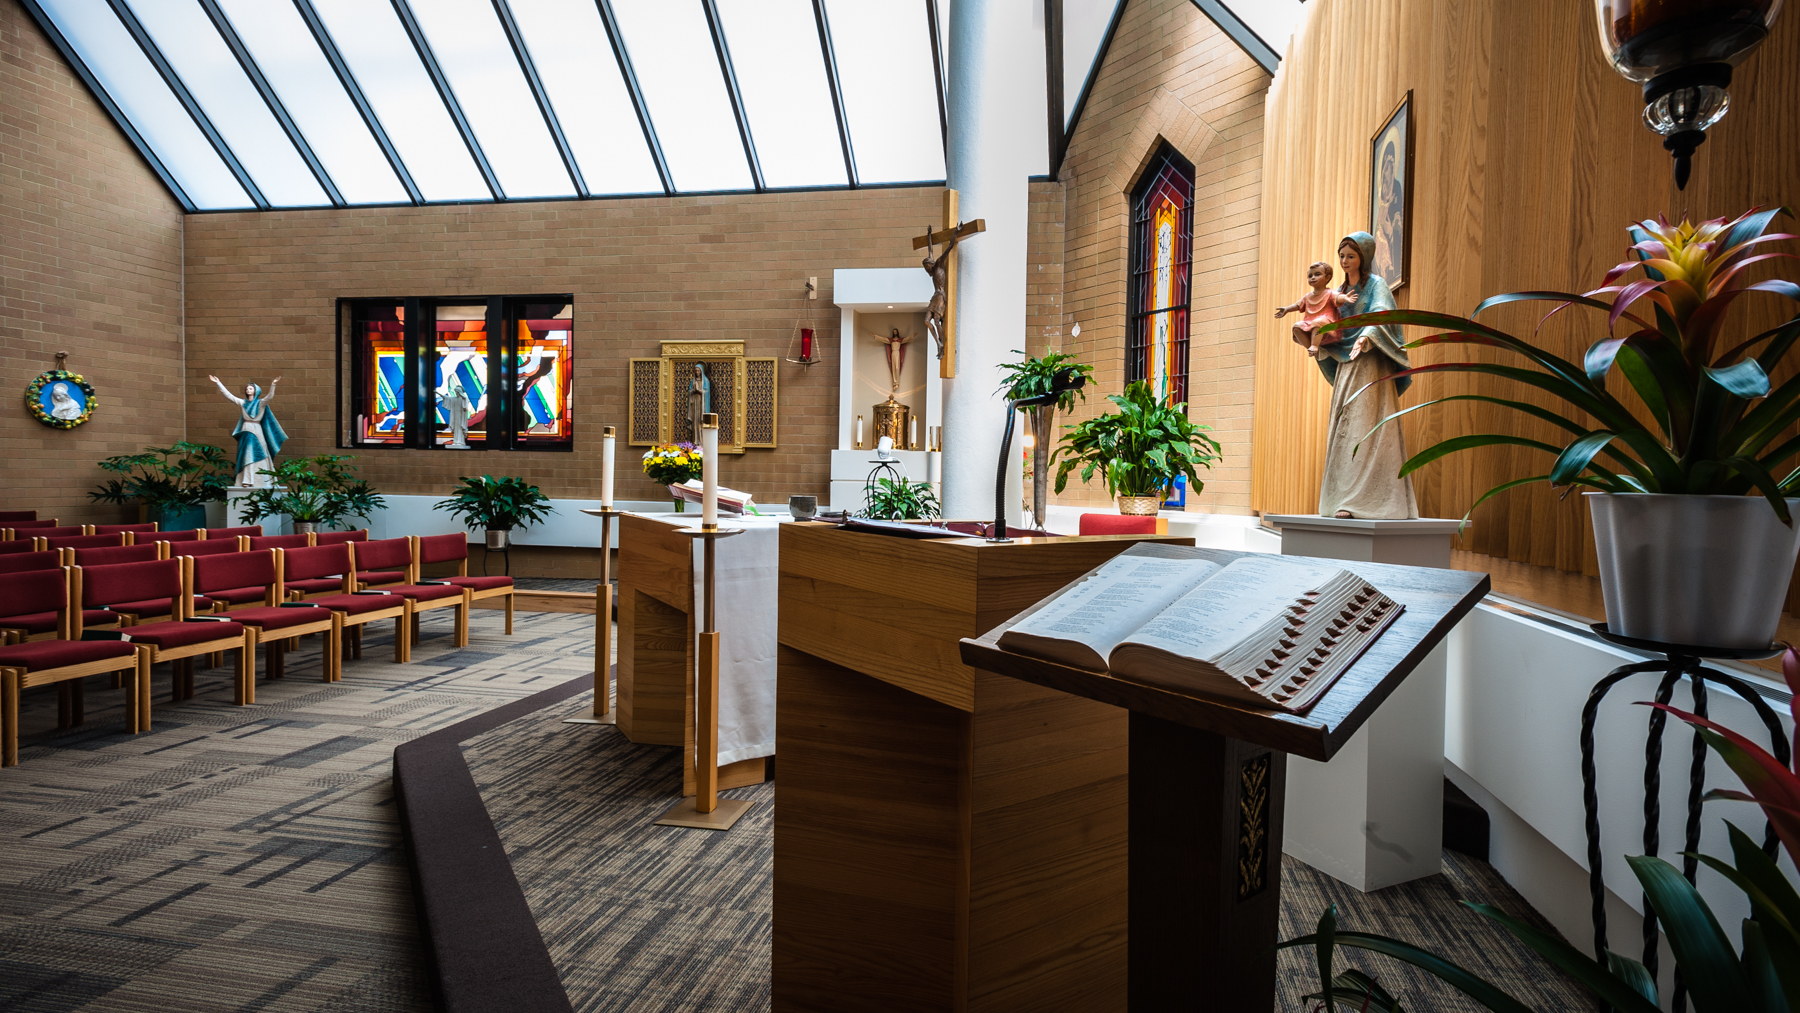 - A Catholic Chapel and an Interfaith Chapel sit several floors apart at St. Elizabeth's Hospital in Brighton.